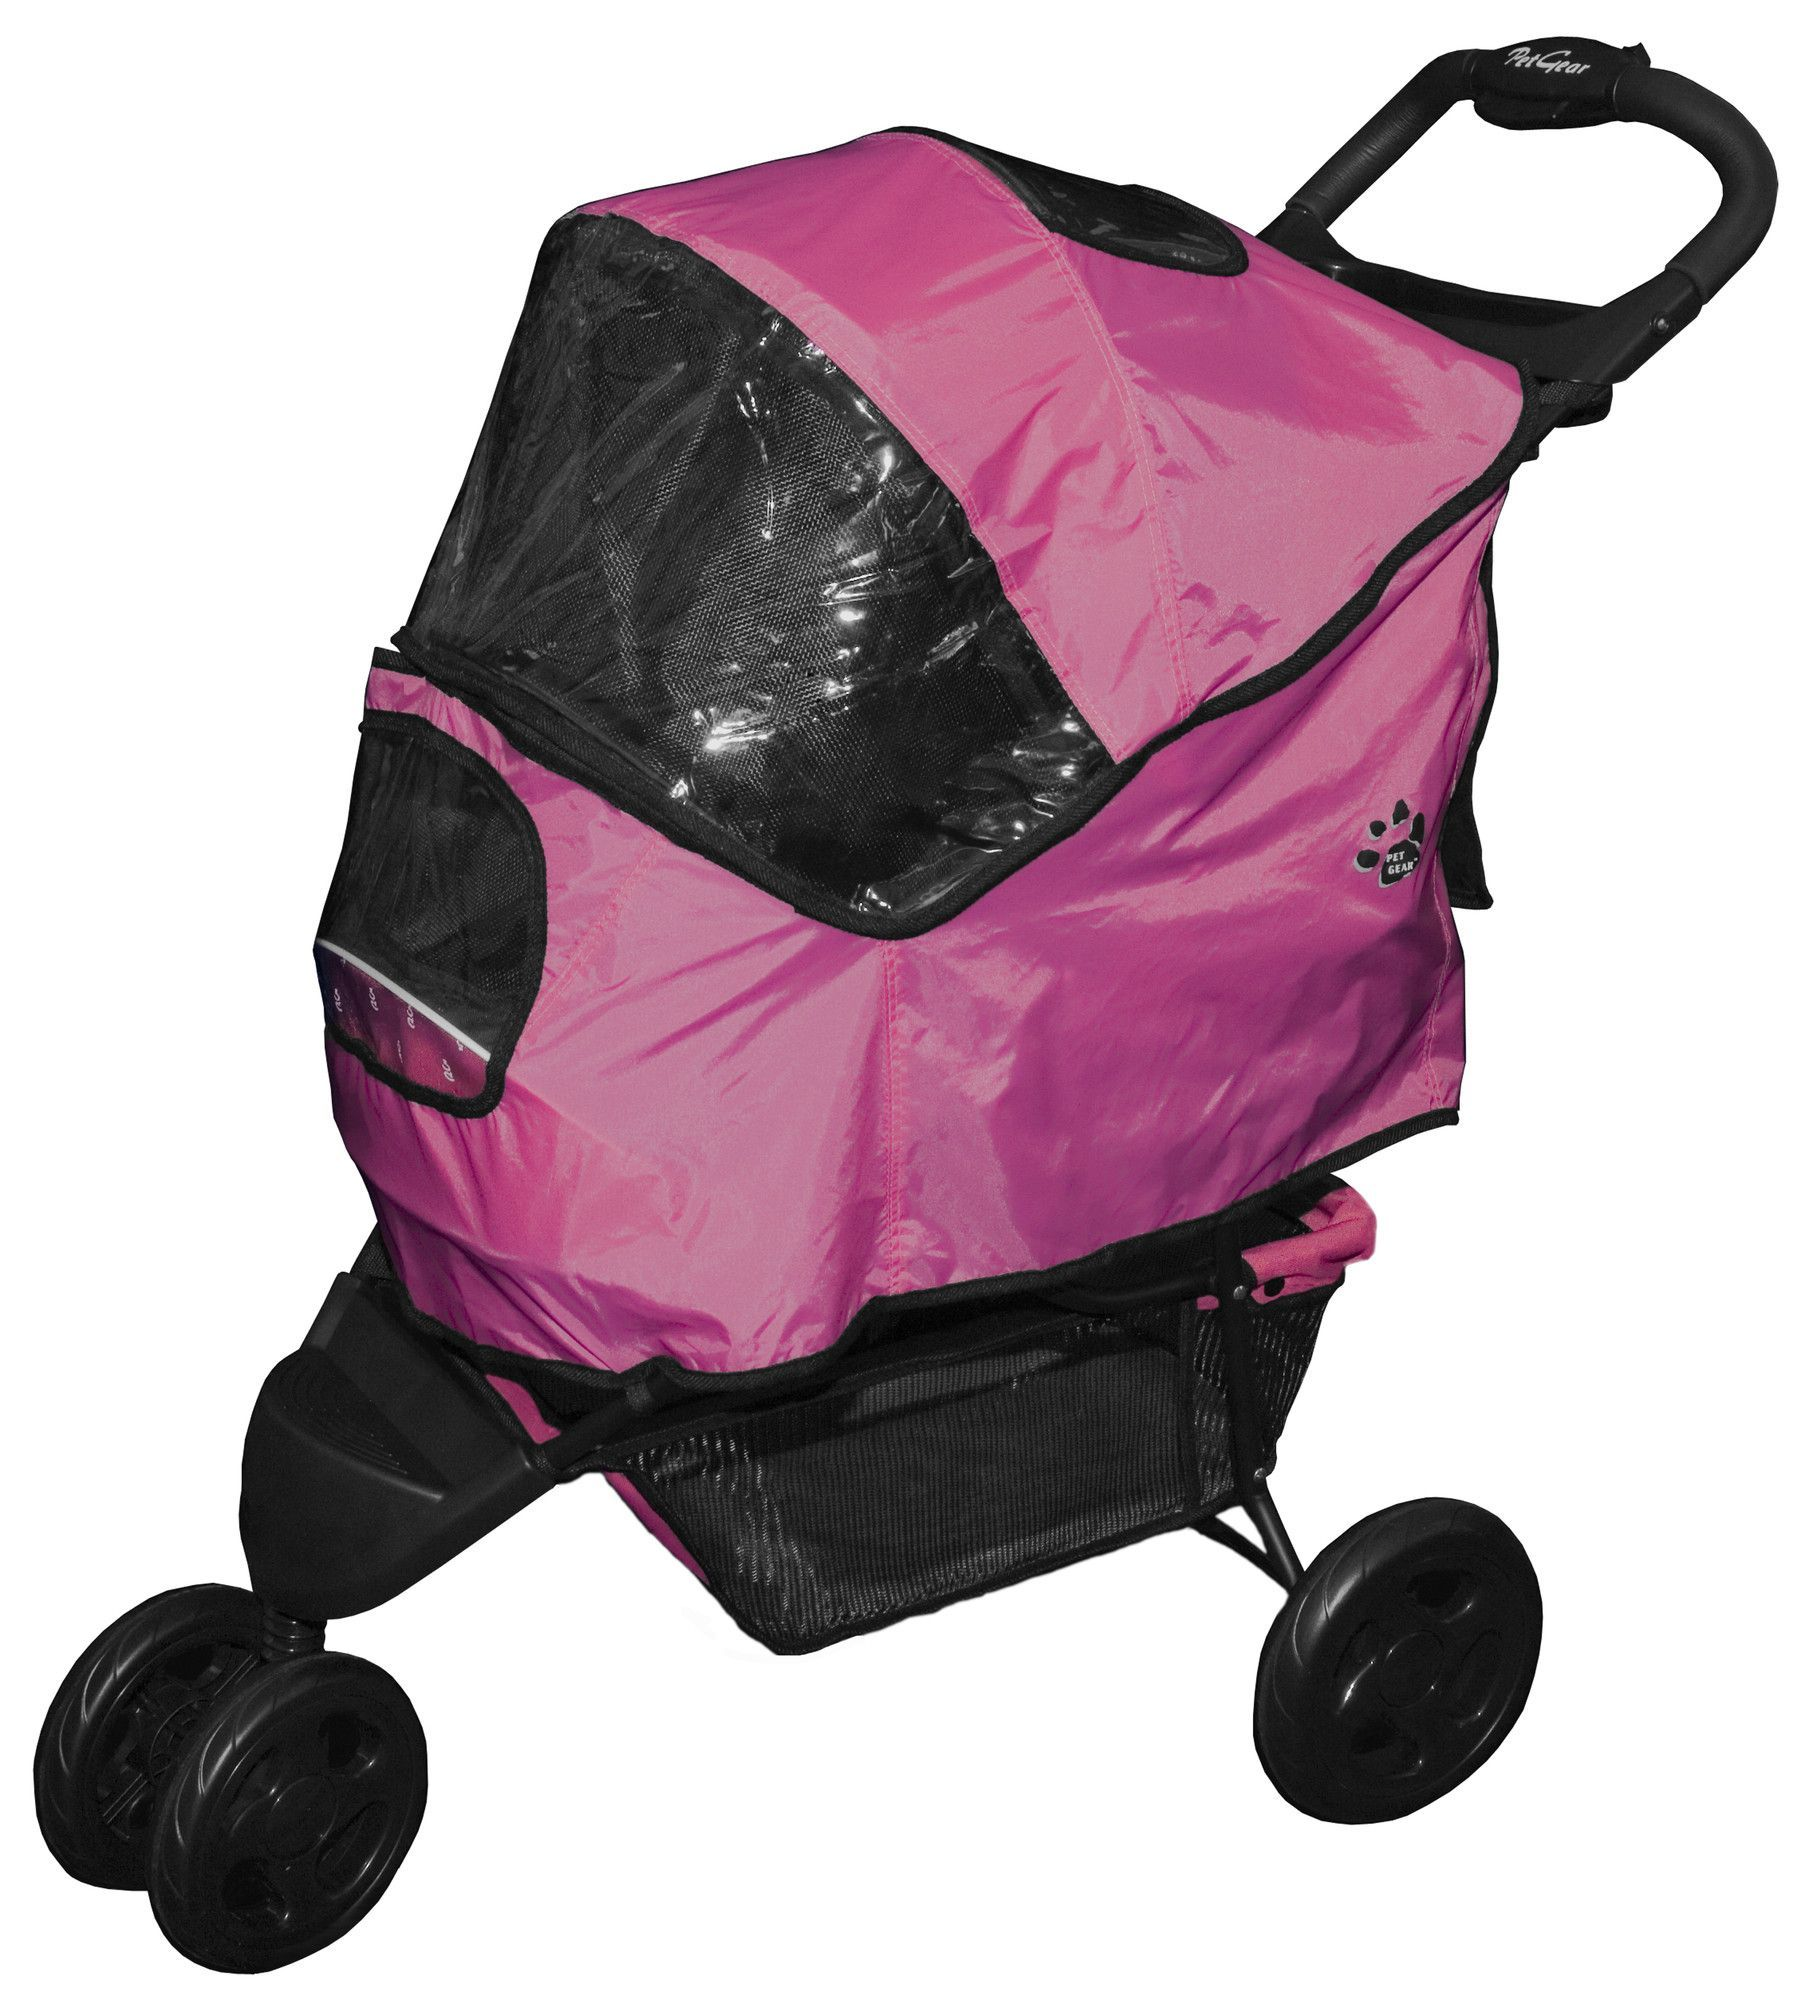 Oxford Pet Stroller Ebay Weather Cover For Special Edition Pet Stroller Products